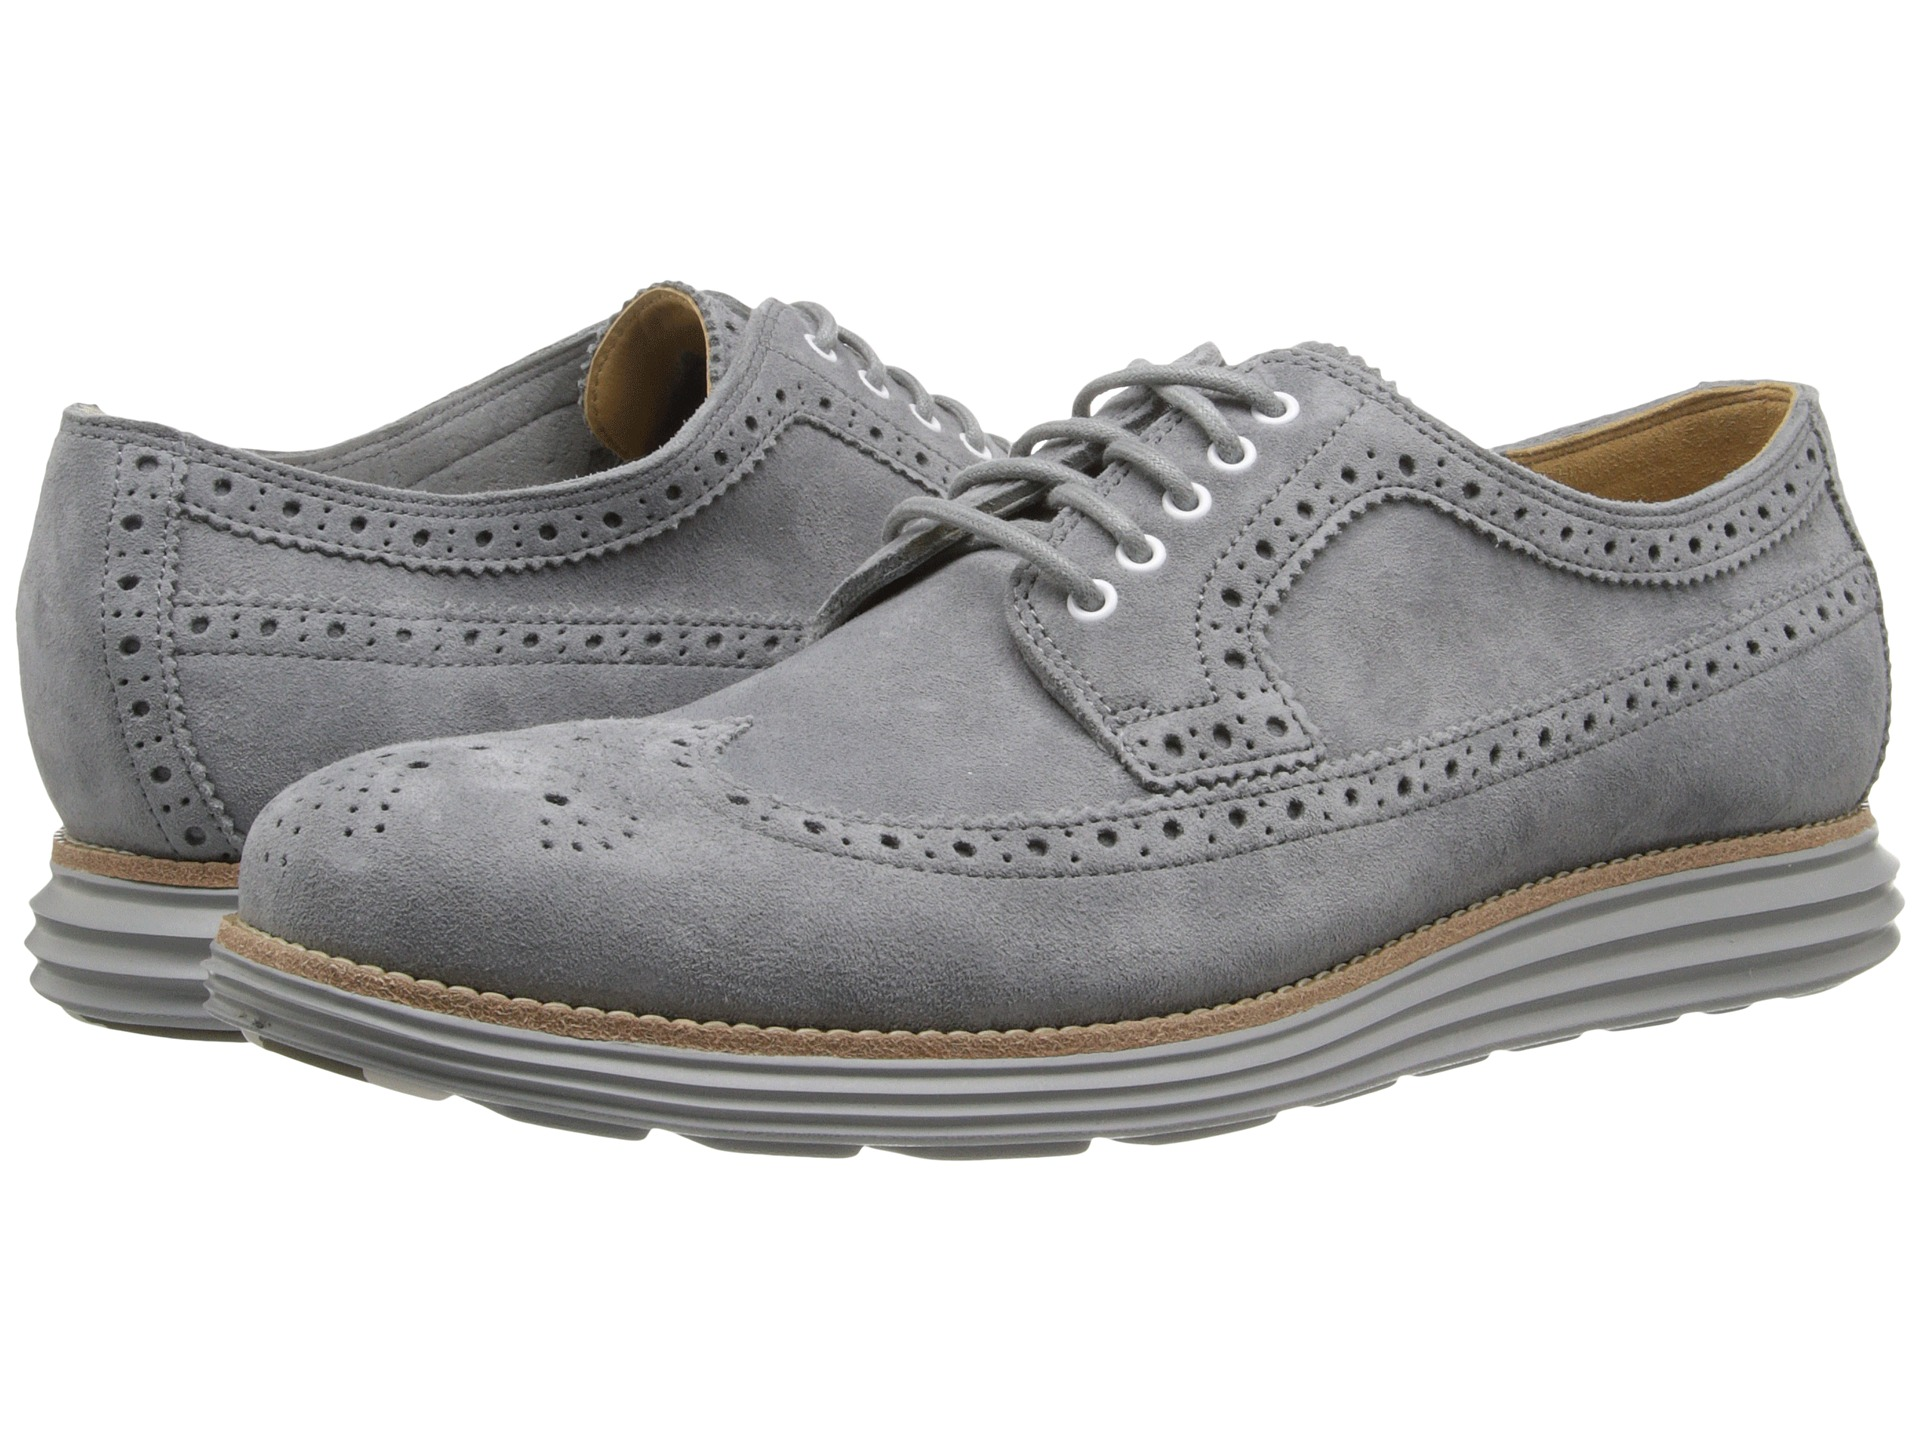 Cole Haan Lunargrand Longwing Zappos Free Shipping